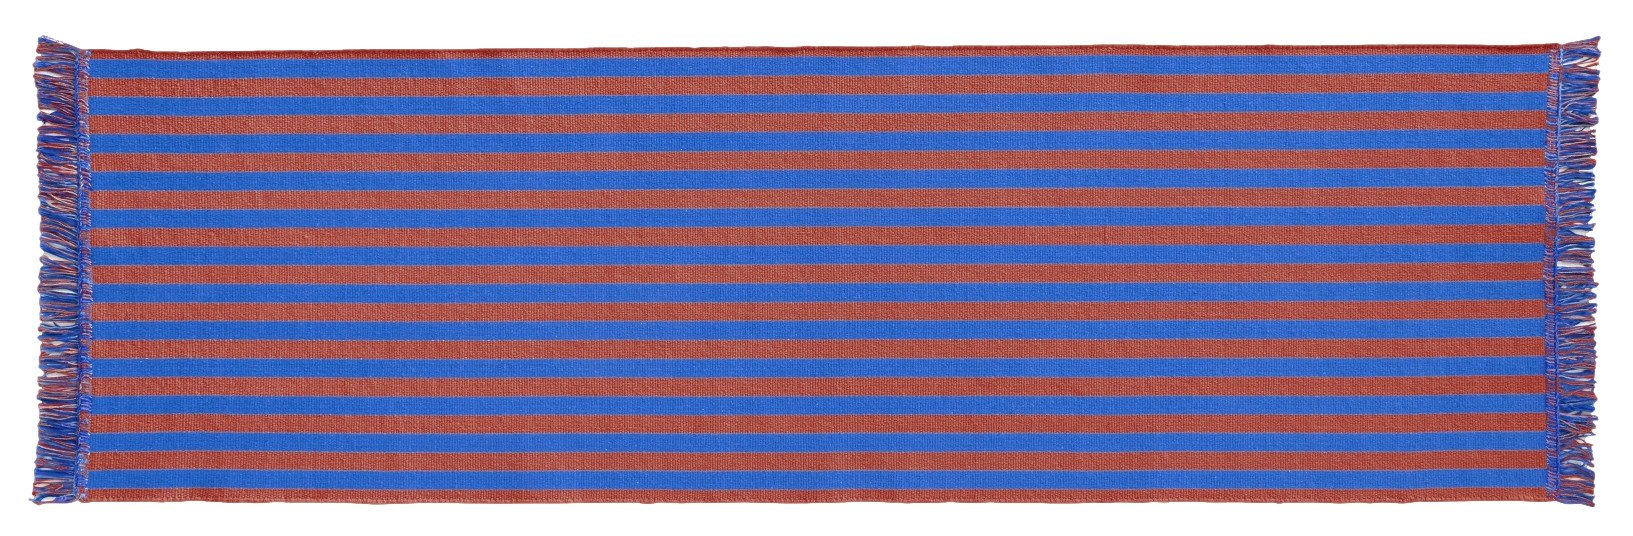 Dywan Stripes and Stripes 60x200 cm brązowo-niebieski, HAY